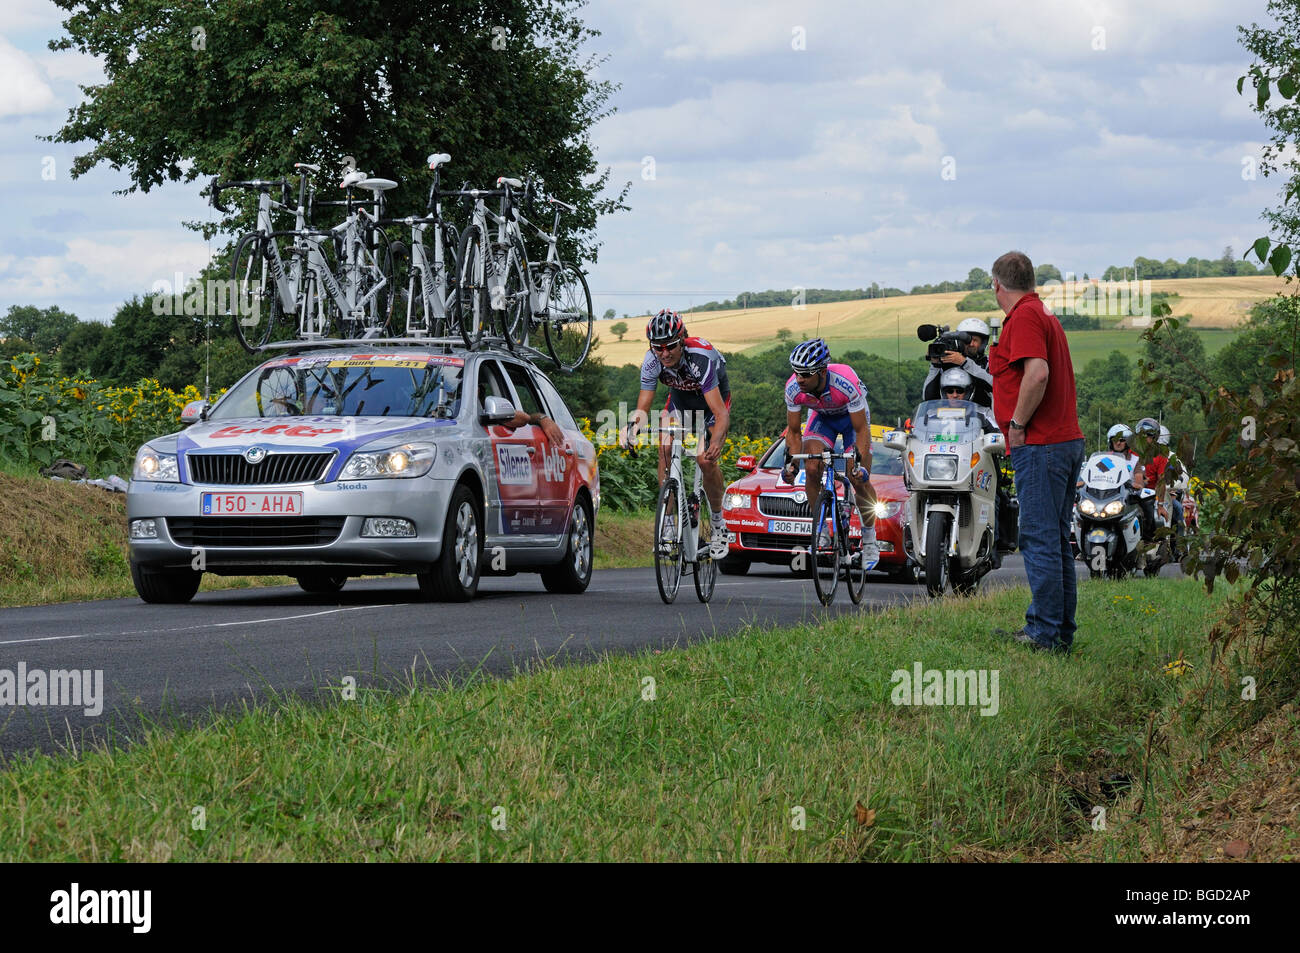 Johan van Summeren and Marcin Sapa leading in a stage of the 2009 Tour de France near Ratilly in the Yonne (89) - Stock Image